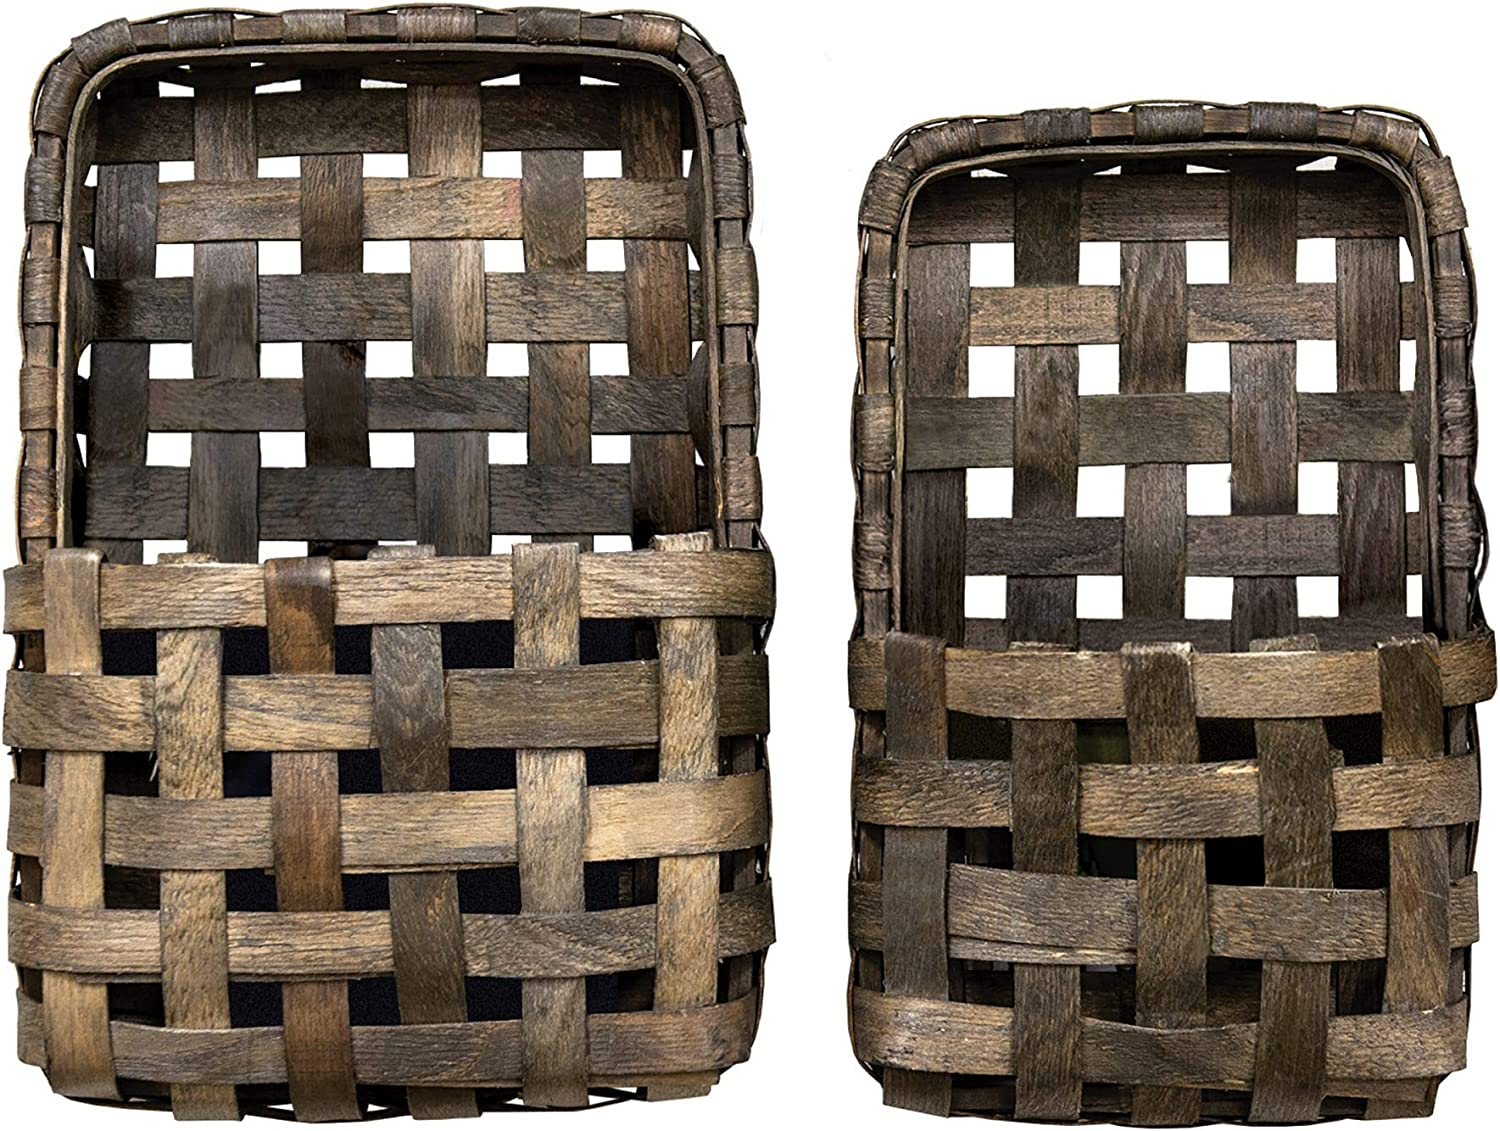 CWI Ultra-Cheap Deals Gifts Aged Tobacco Wall Set Pocket security Baskets Multi 2